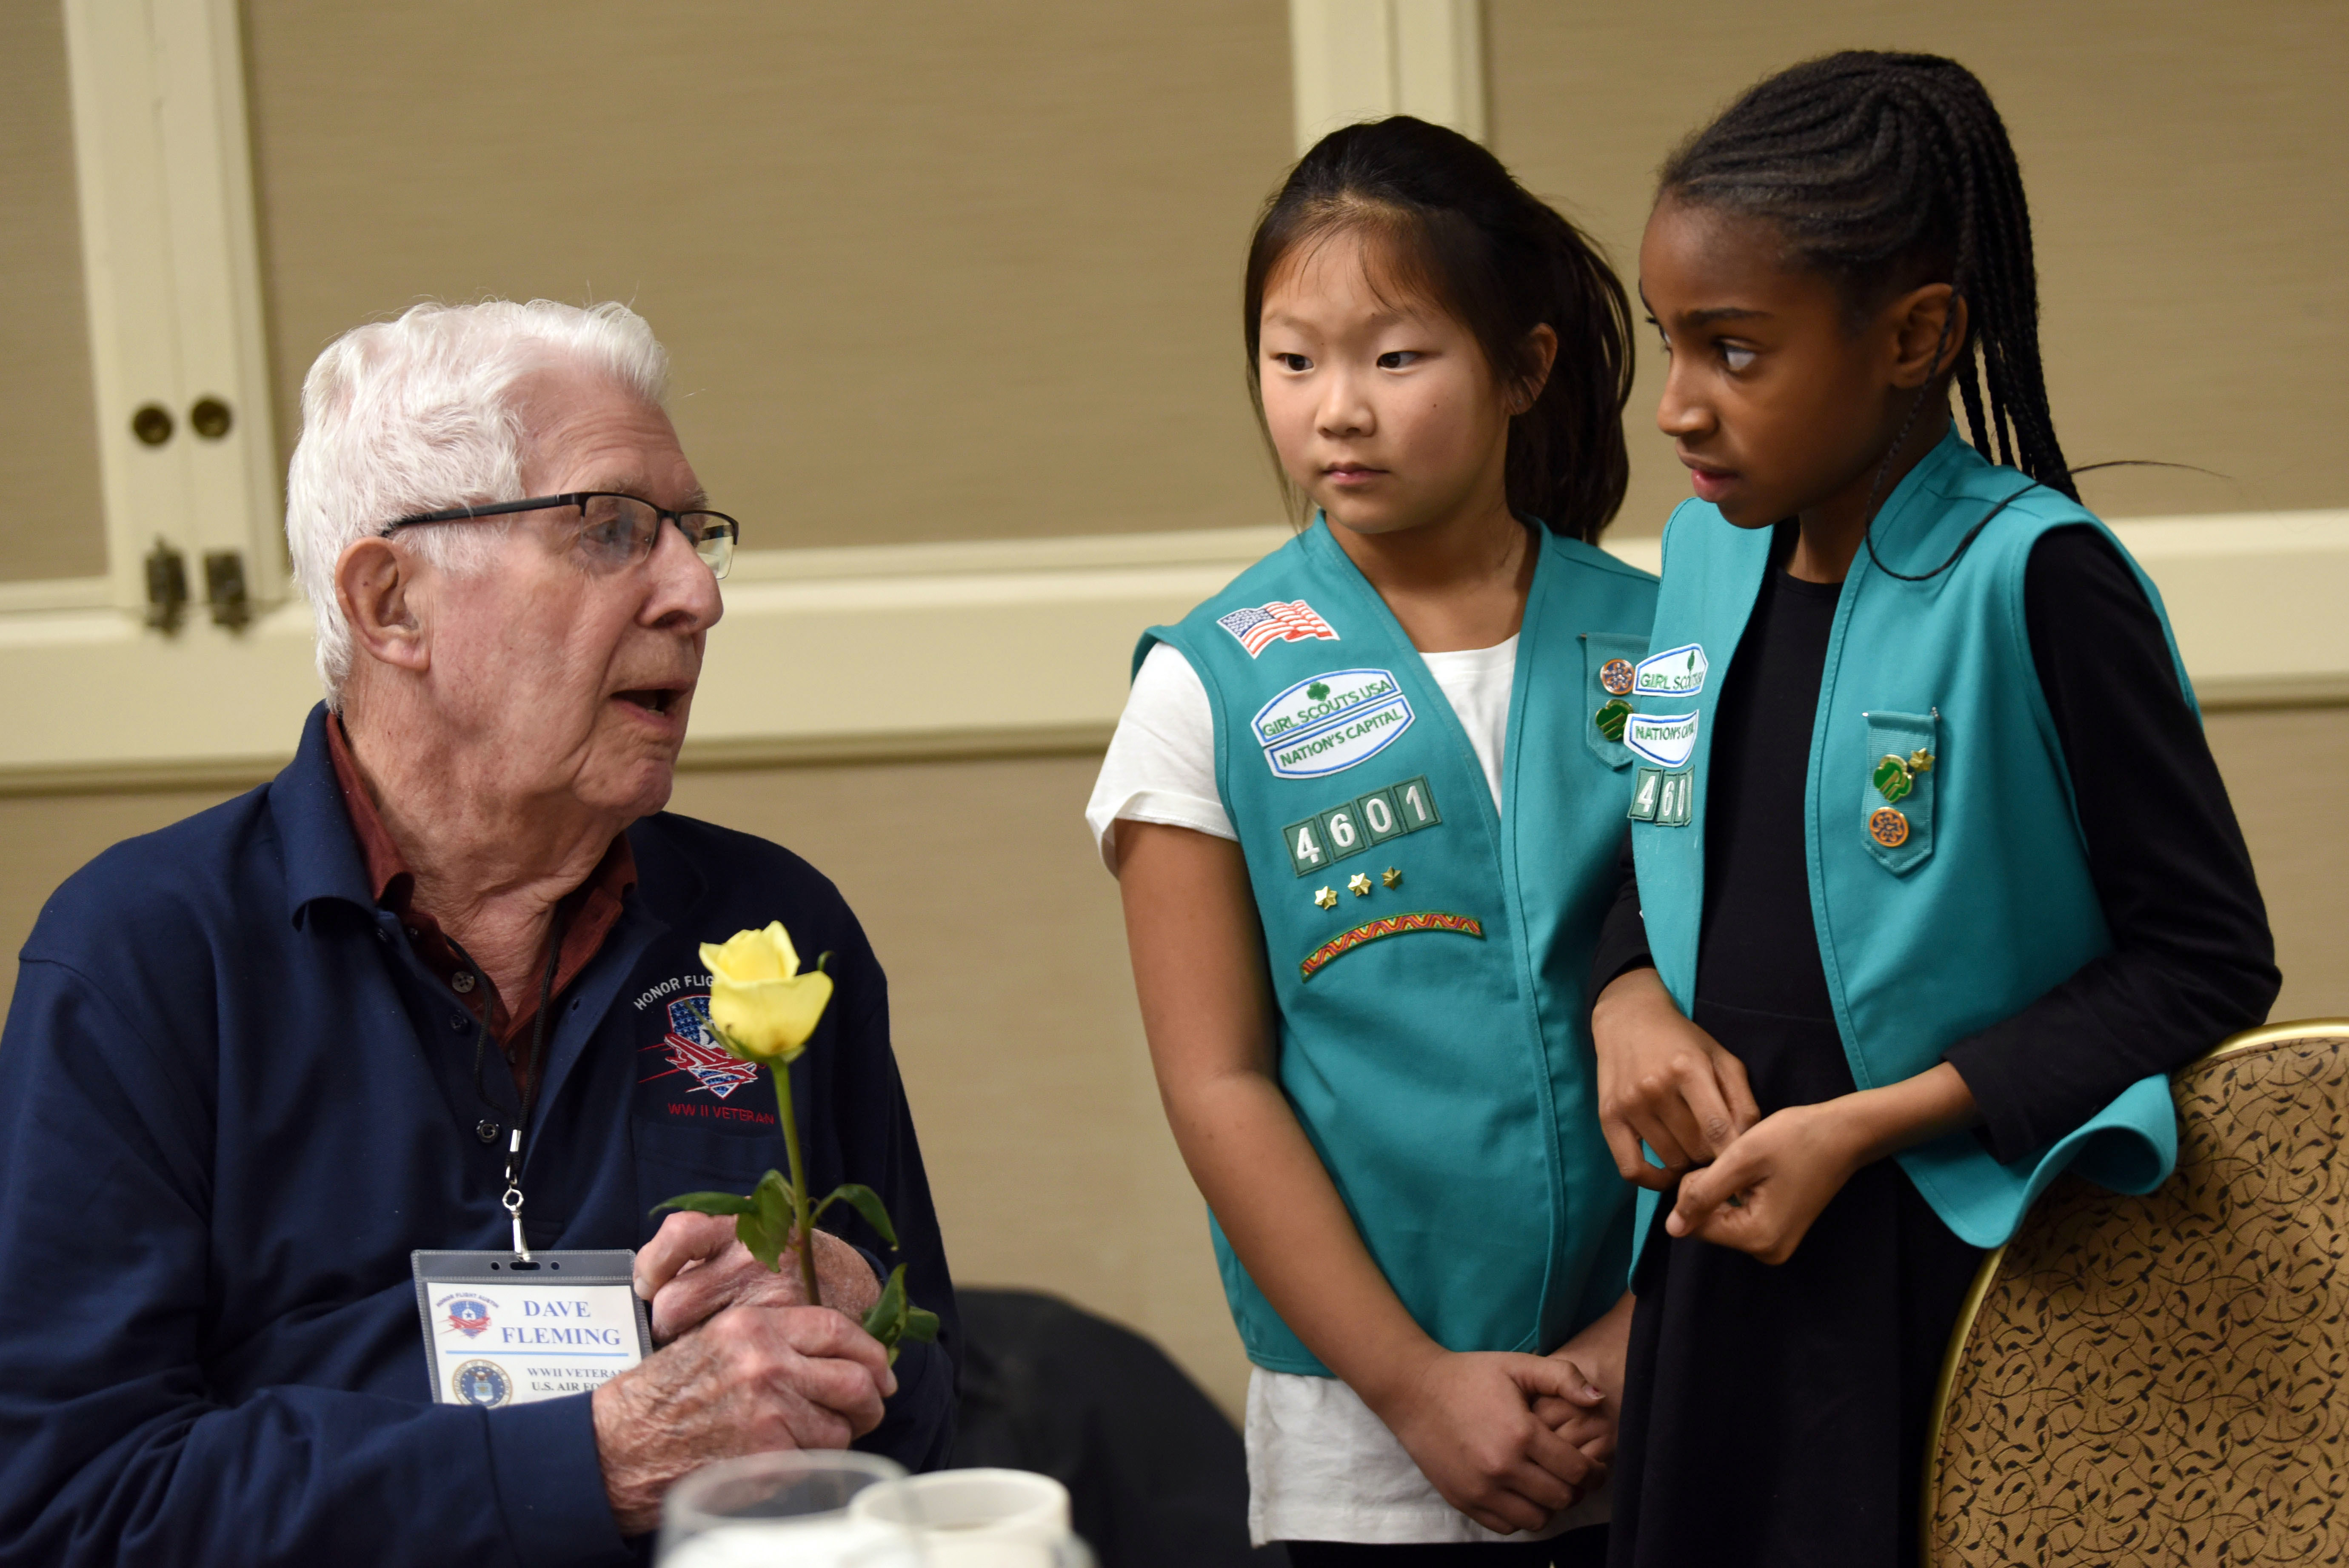 veteran talking with girl scouts